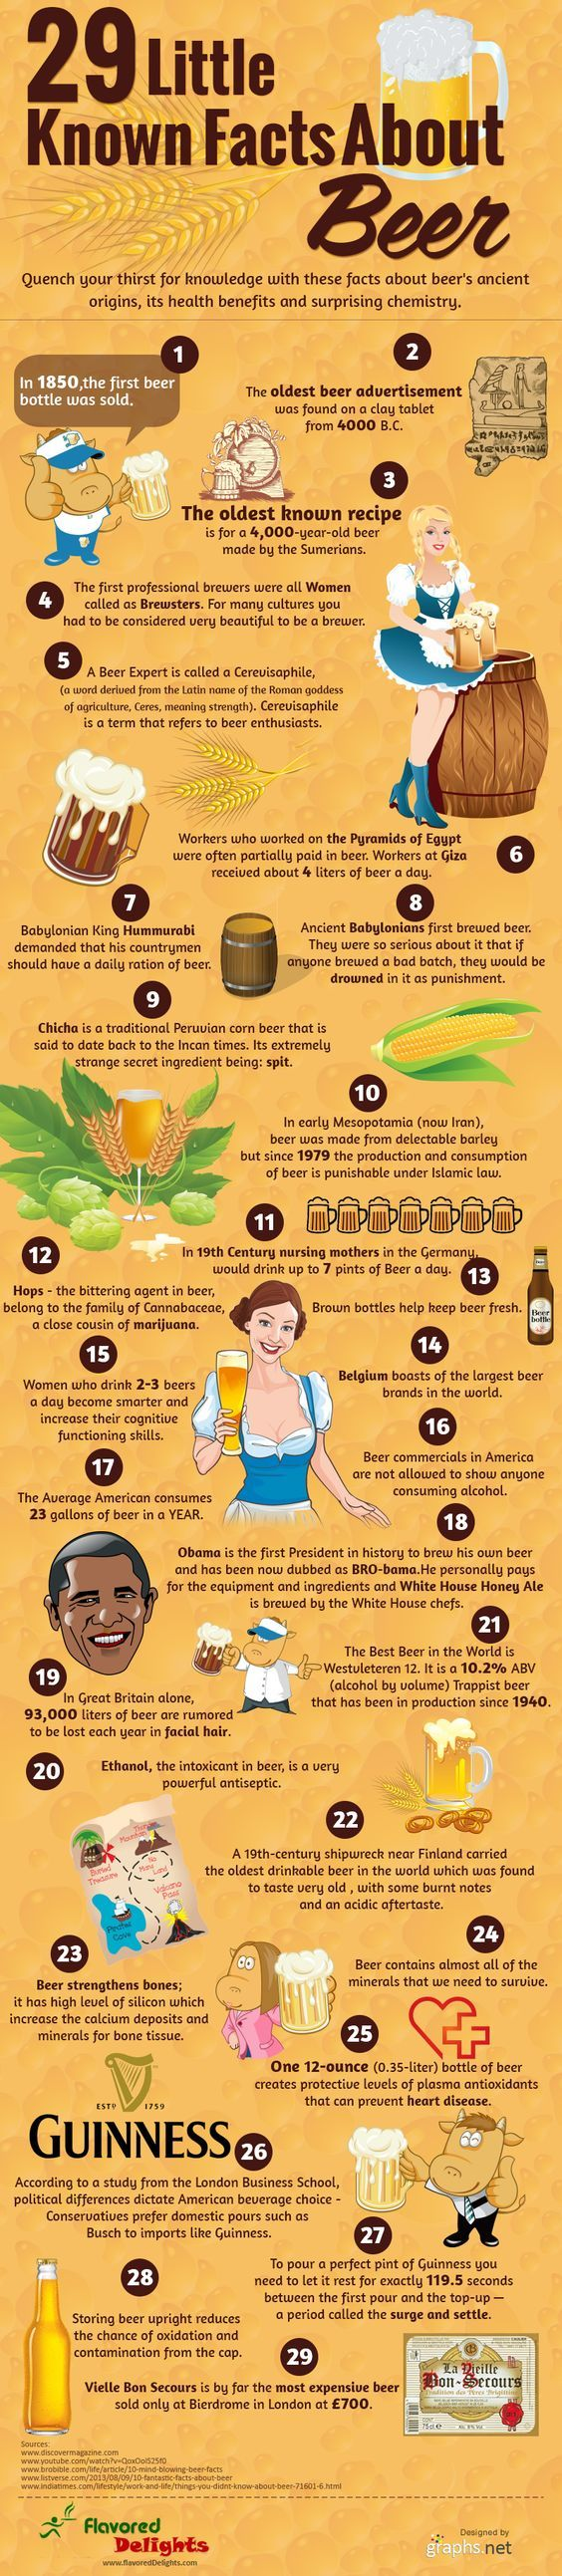 29 Things You Should Know About Beer, For National American Beer Day (INFOGRAPHIC):